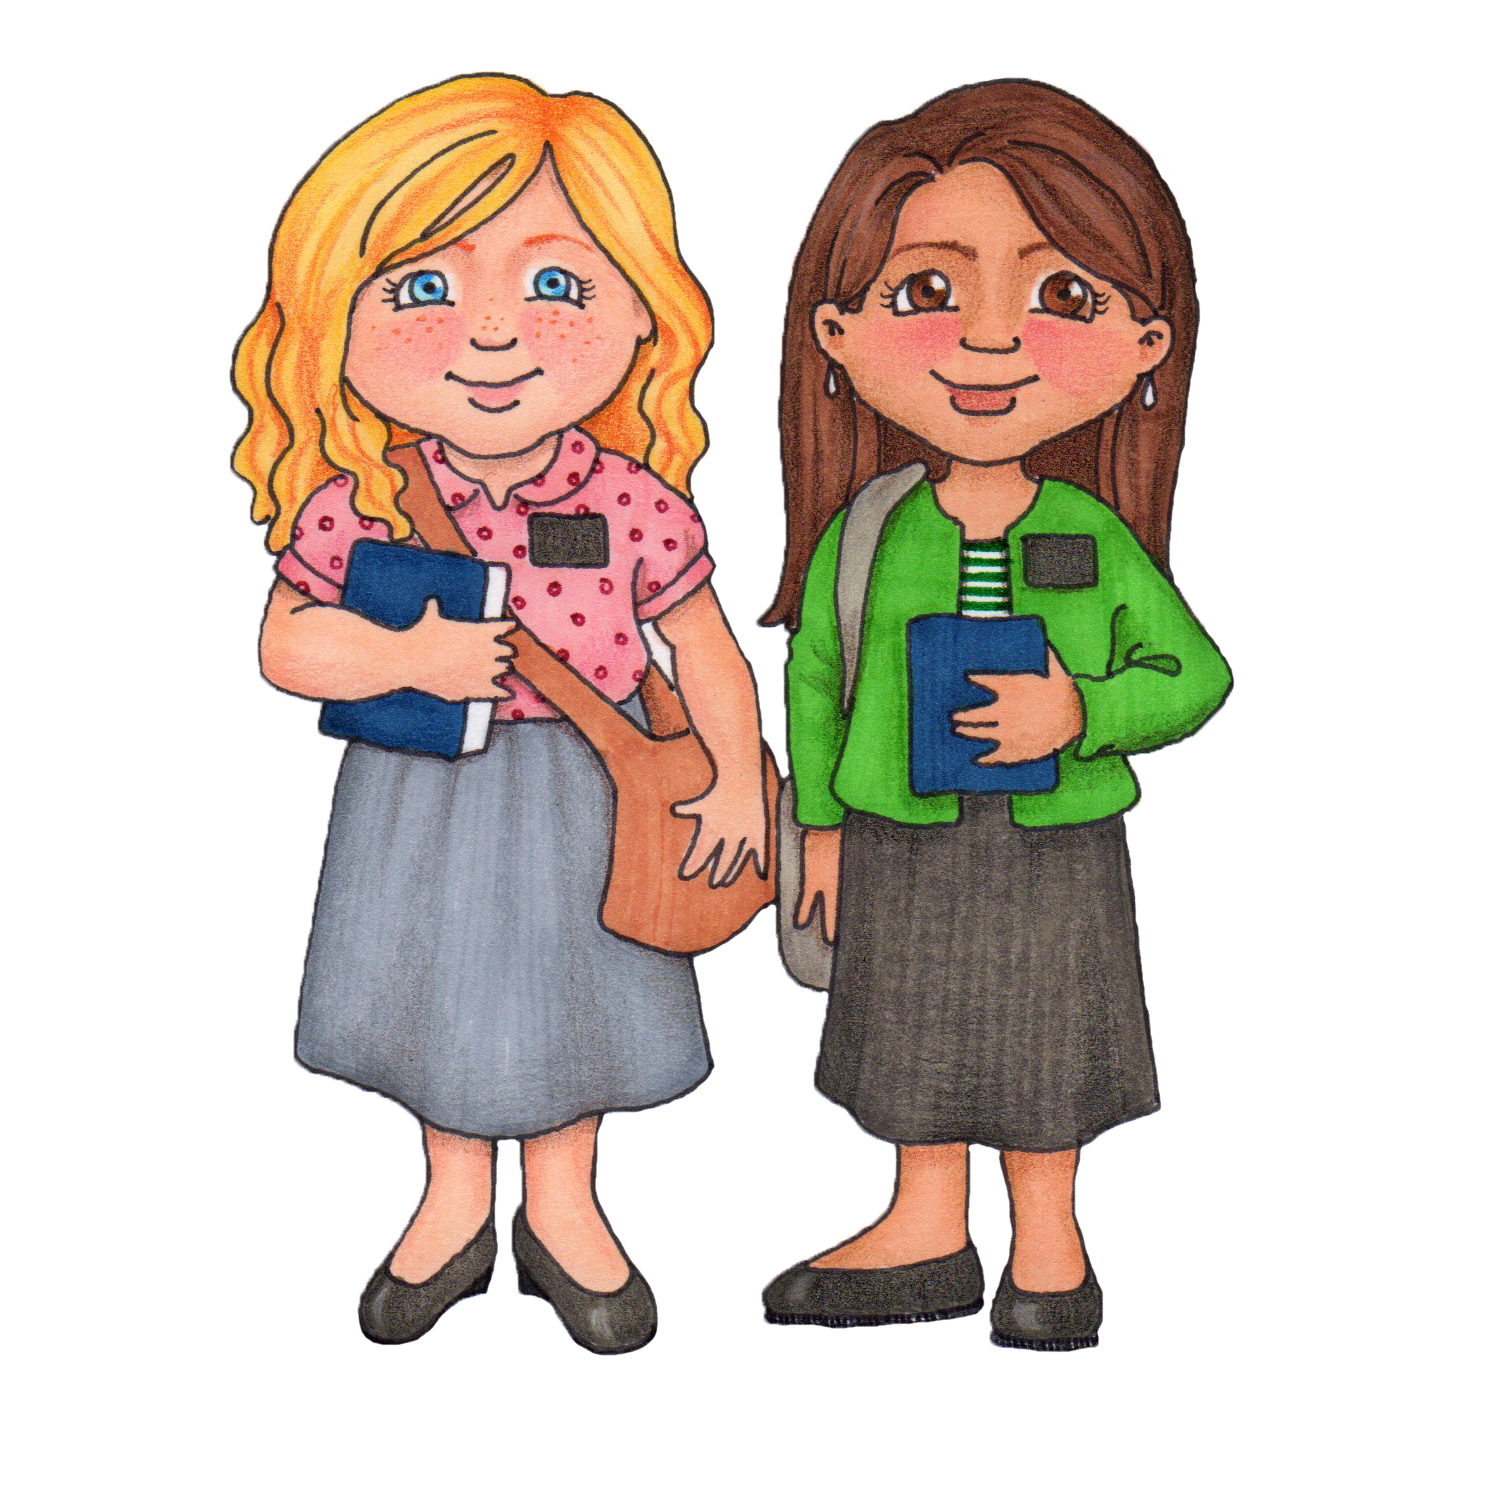 Free lds missionary clipart. Missionaries for my primary